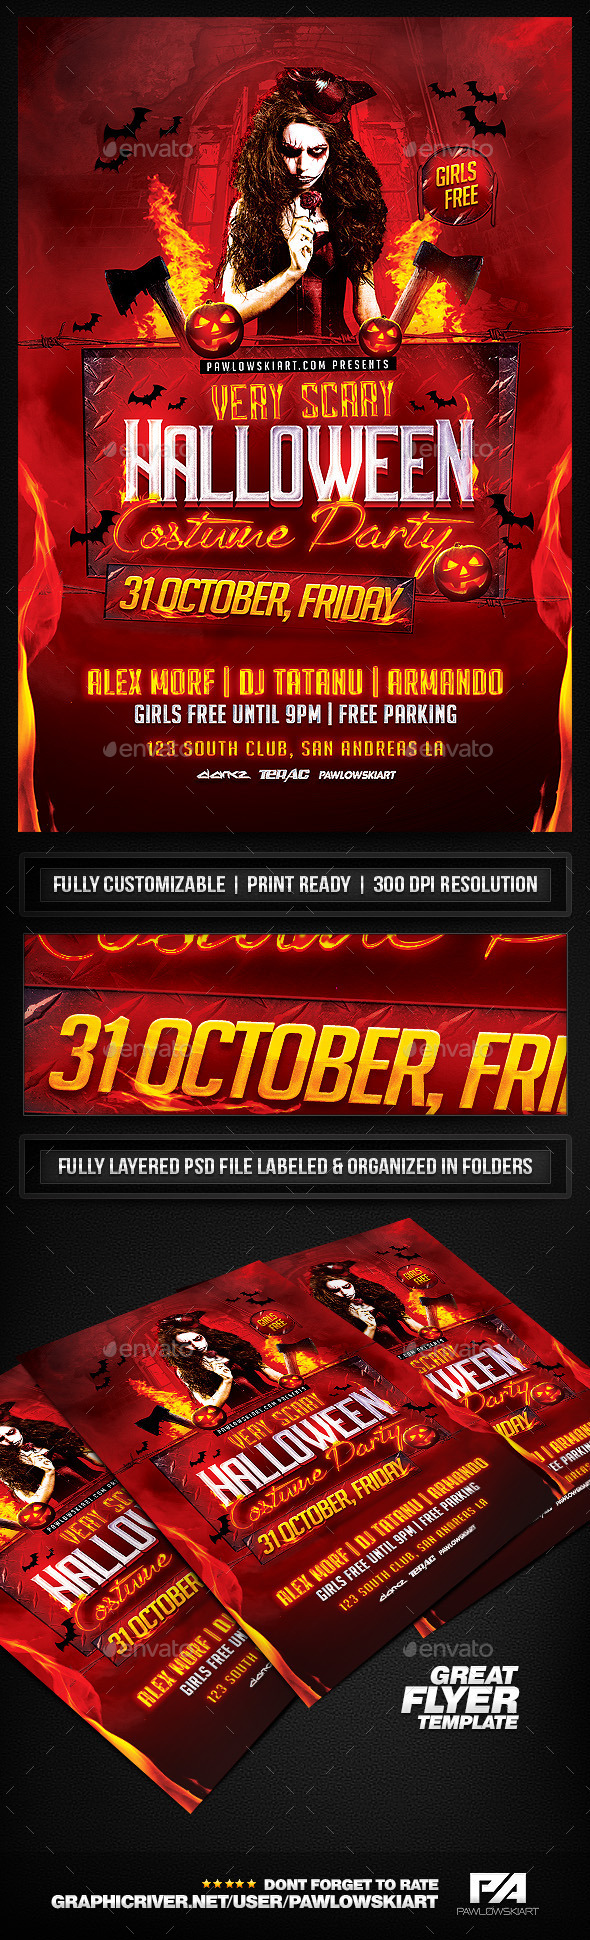 Very Scary Halloween Party Flyer Template